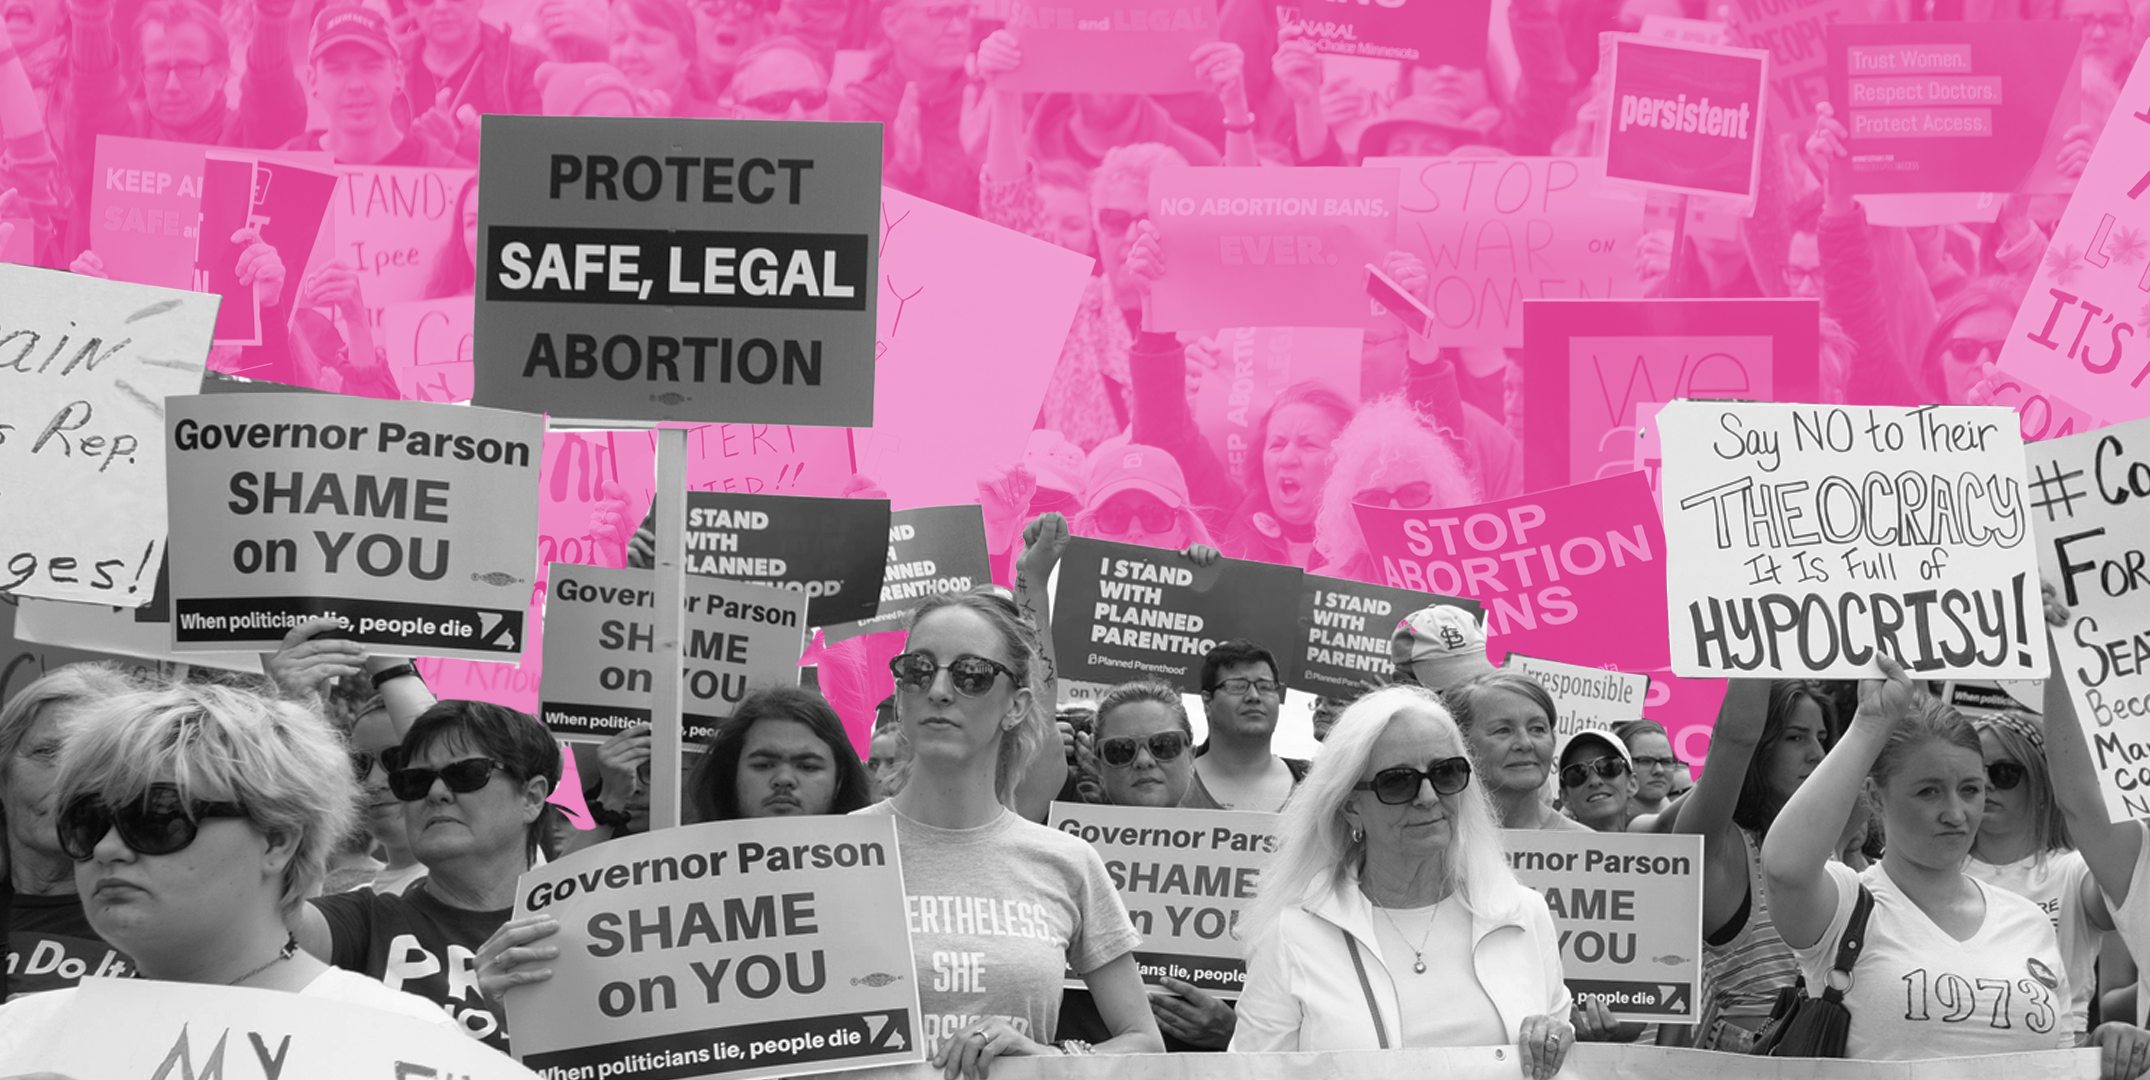 What You Need to Know About This Planned Parenthood News